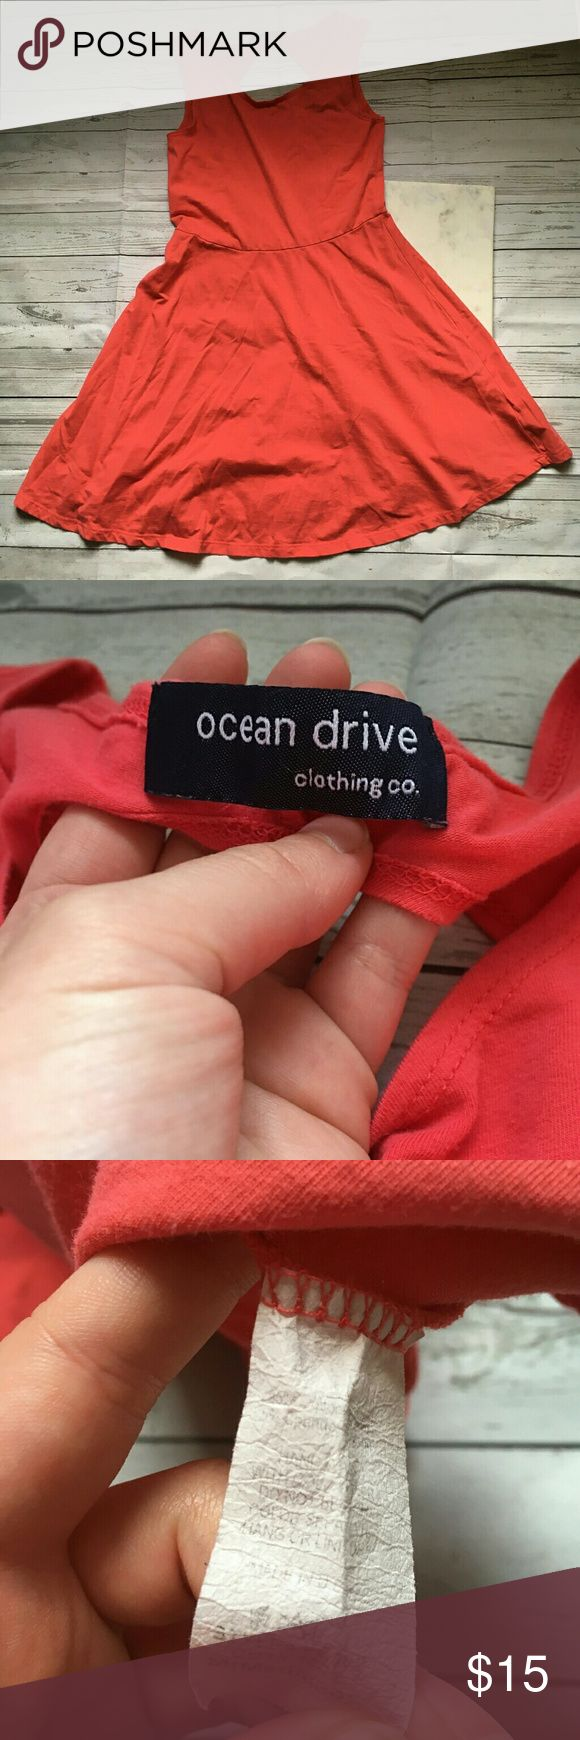 ocean drive womens medium coral sundress beachy gently used with no flaws great for the beach and boardwalk  armpit to armpit = 14.5 inches length = 30 inches Ocean Drive Dresses Mini